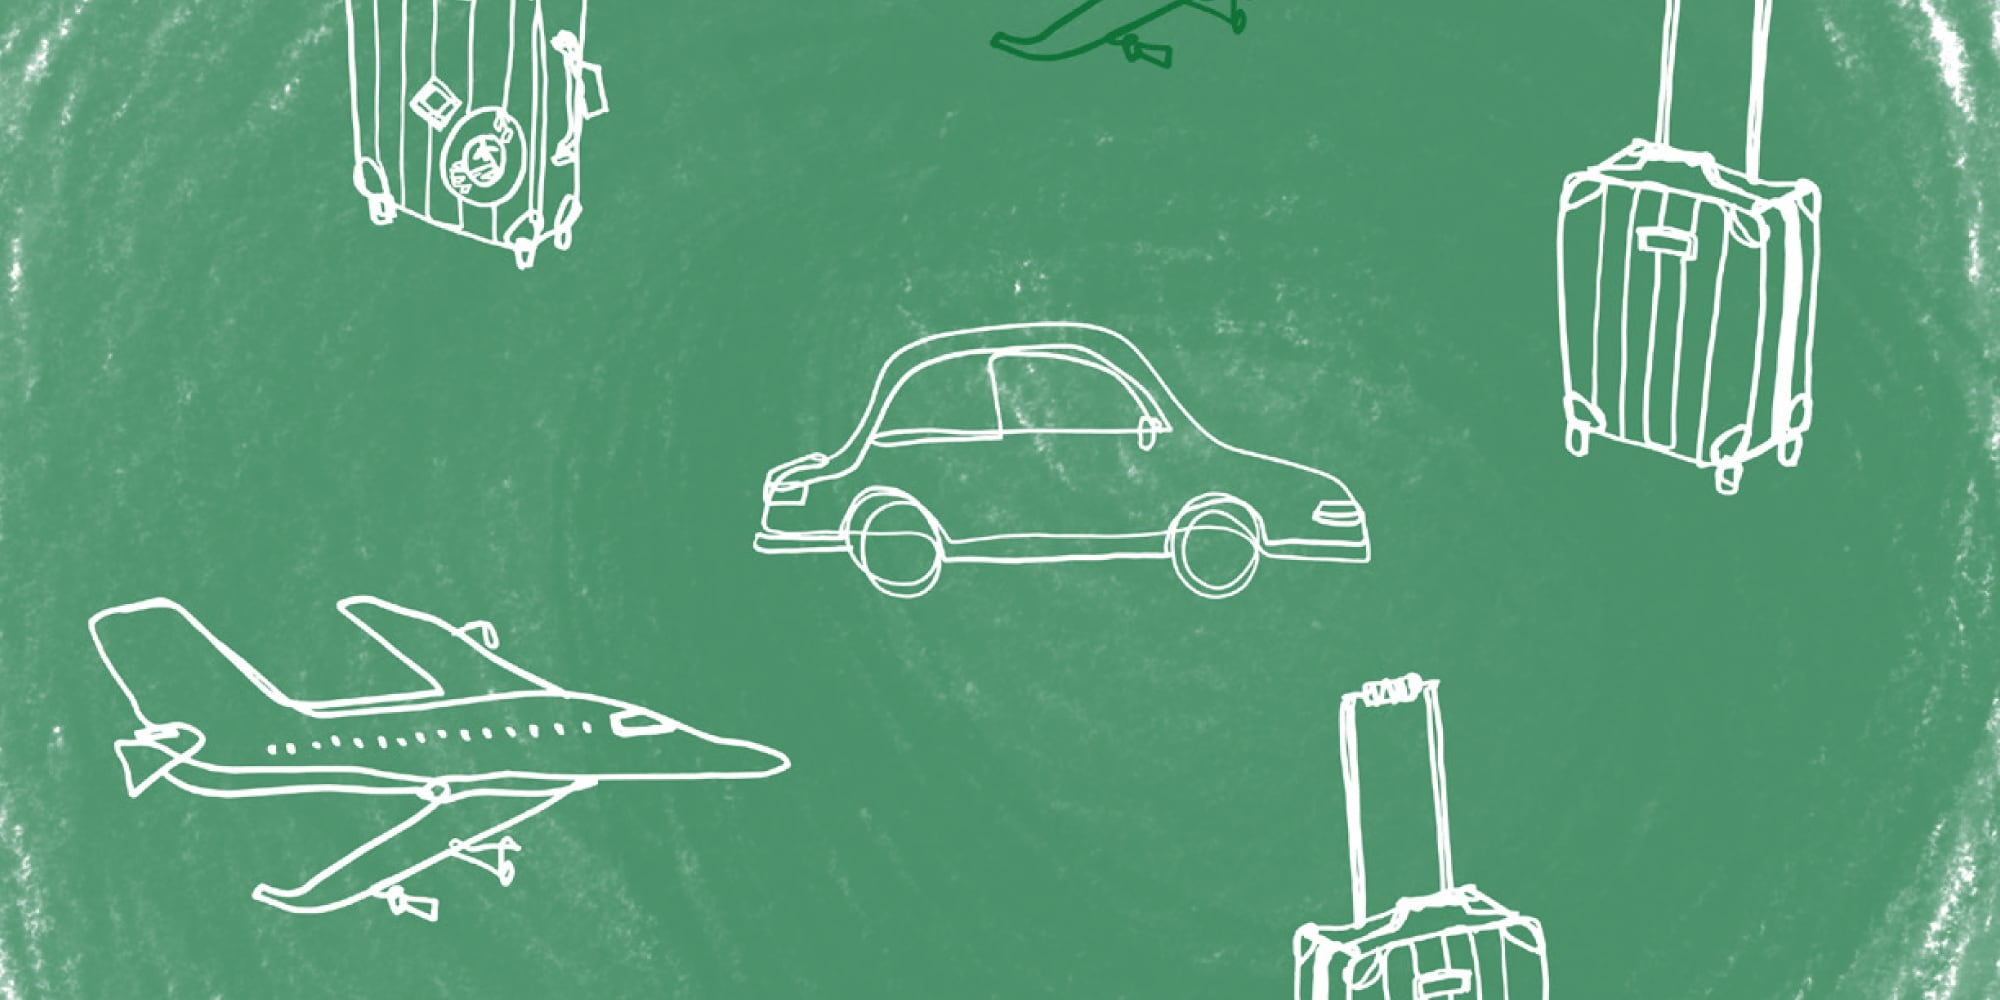 Line drawing modes of transportation on green background